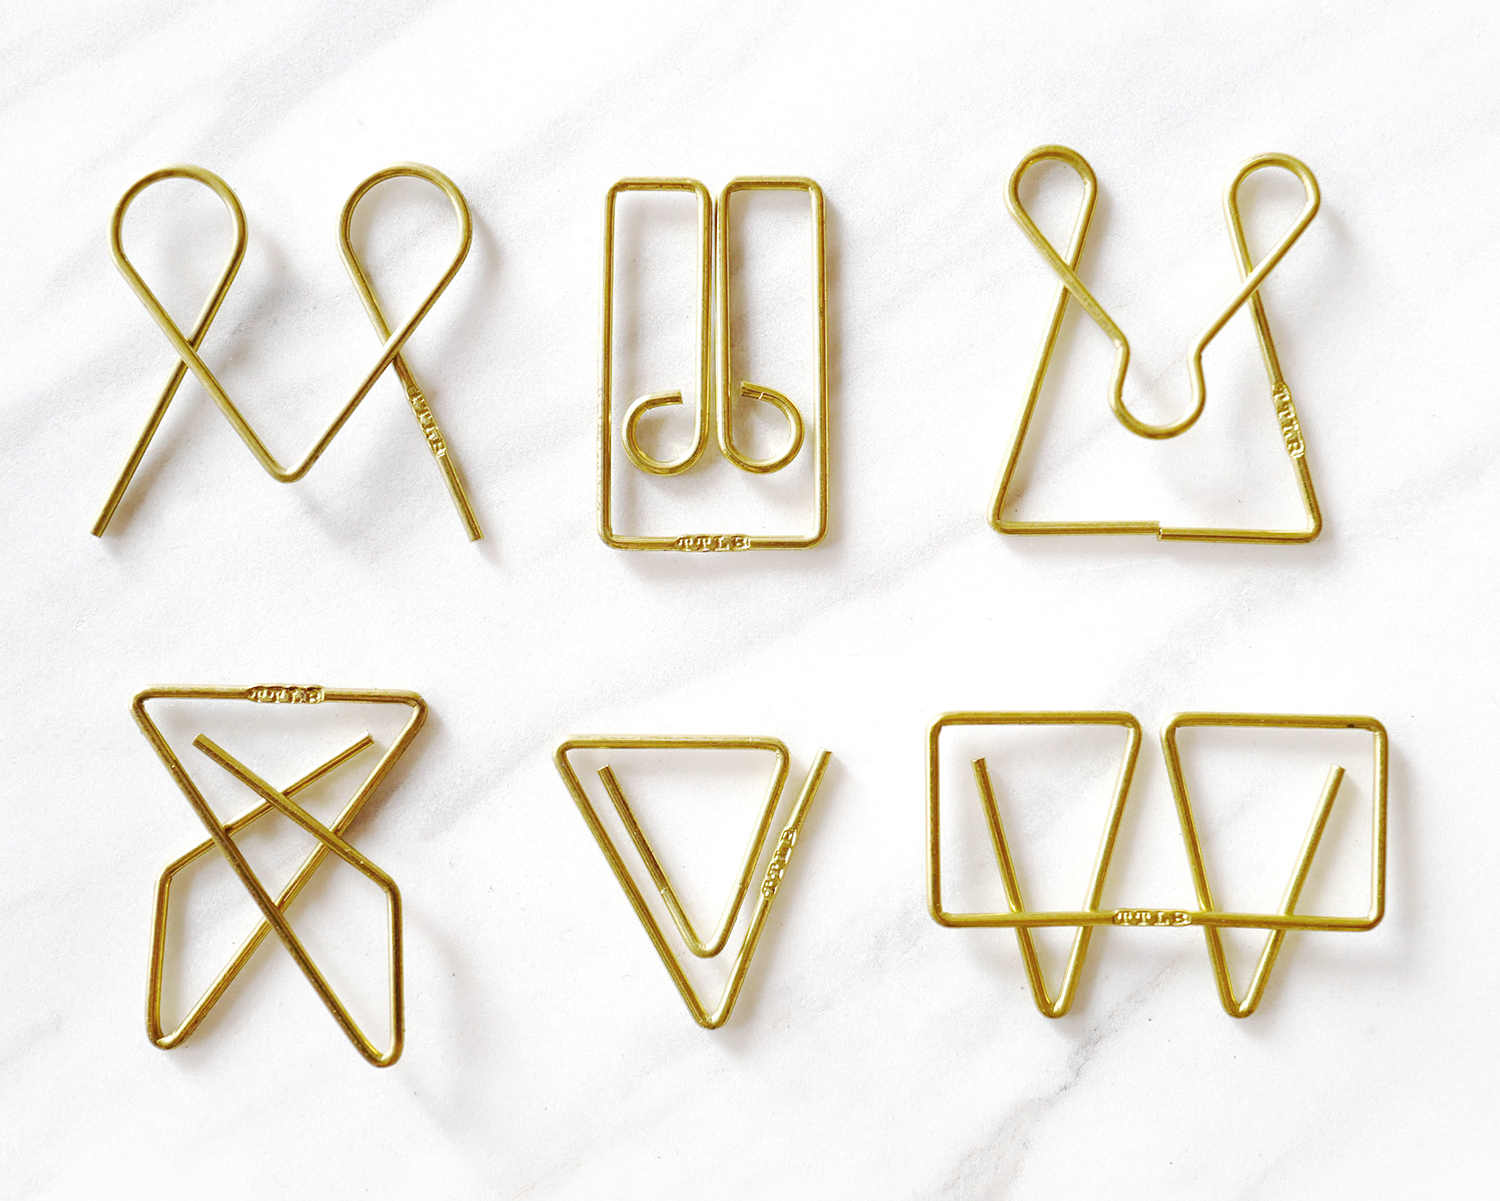 Curator: example of how better design can elevate even simple and basic items around us. - These brass paper clips are perfect for keeping documents and important sheets of paper in check. Smart in design, these binder clips allow you to see through to the paper.